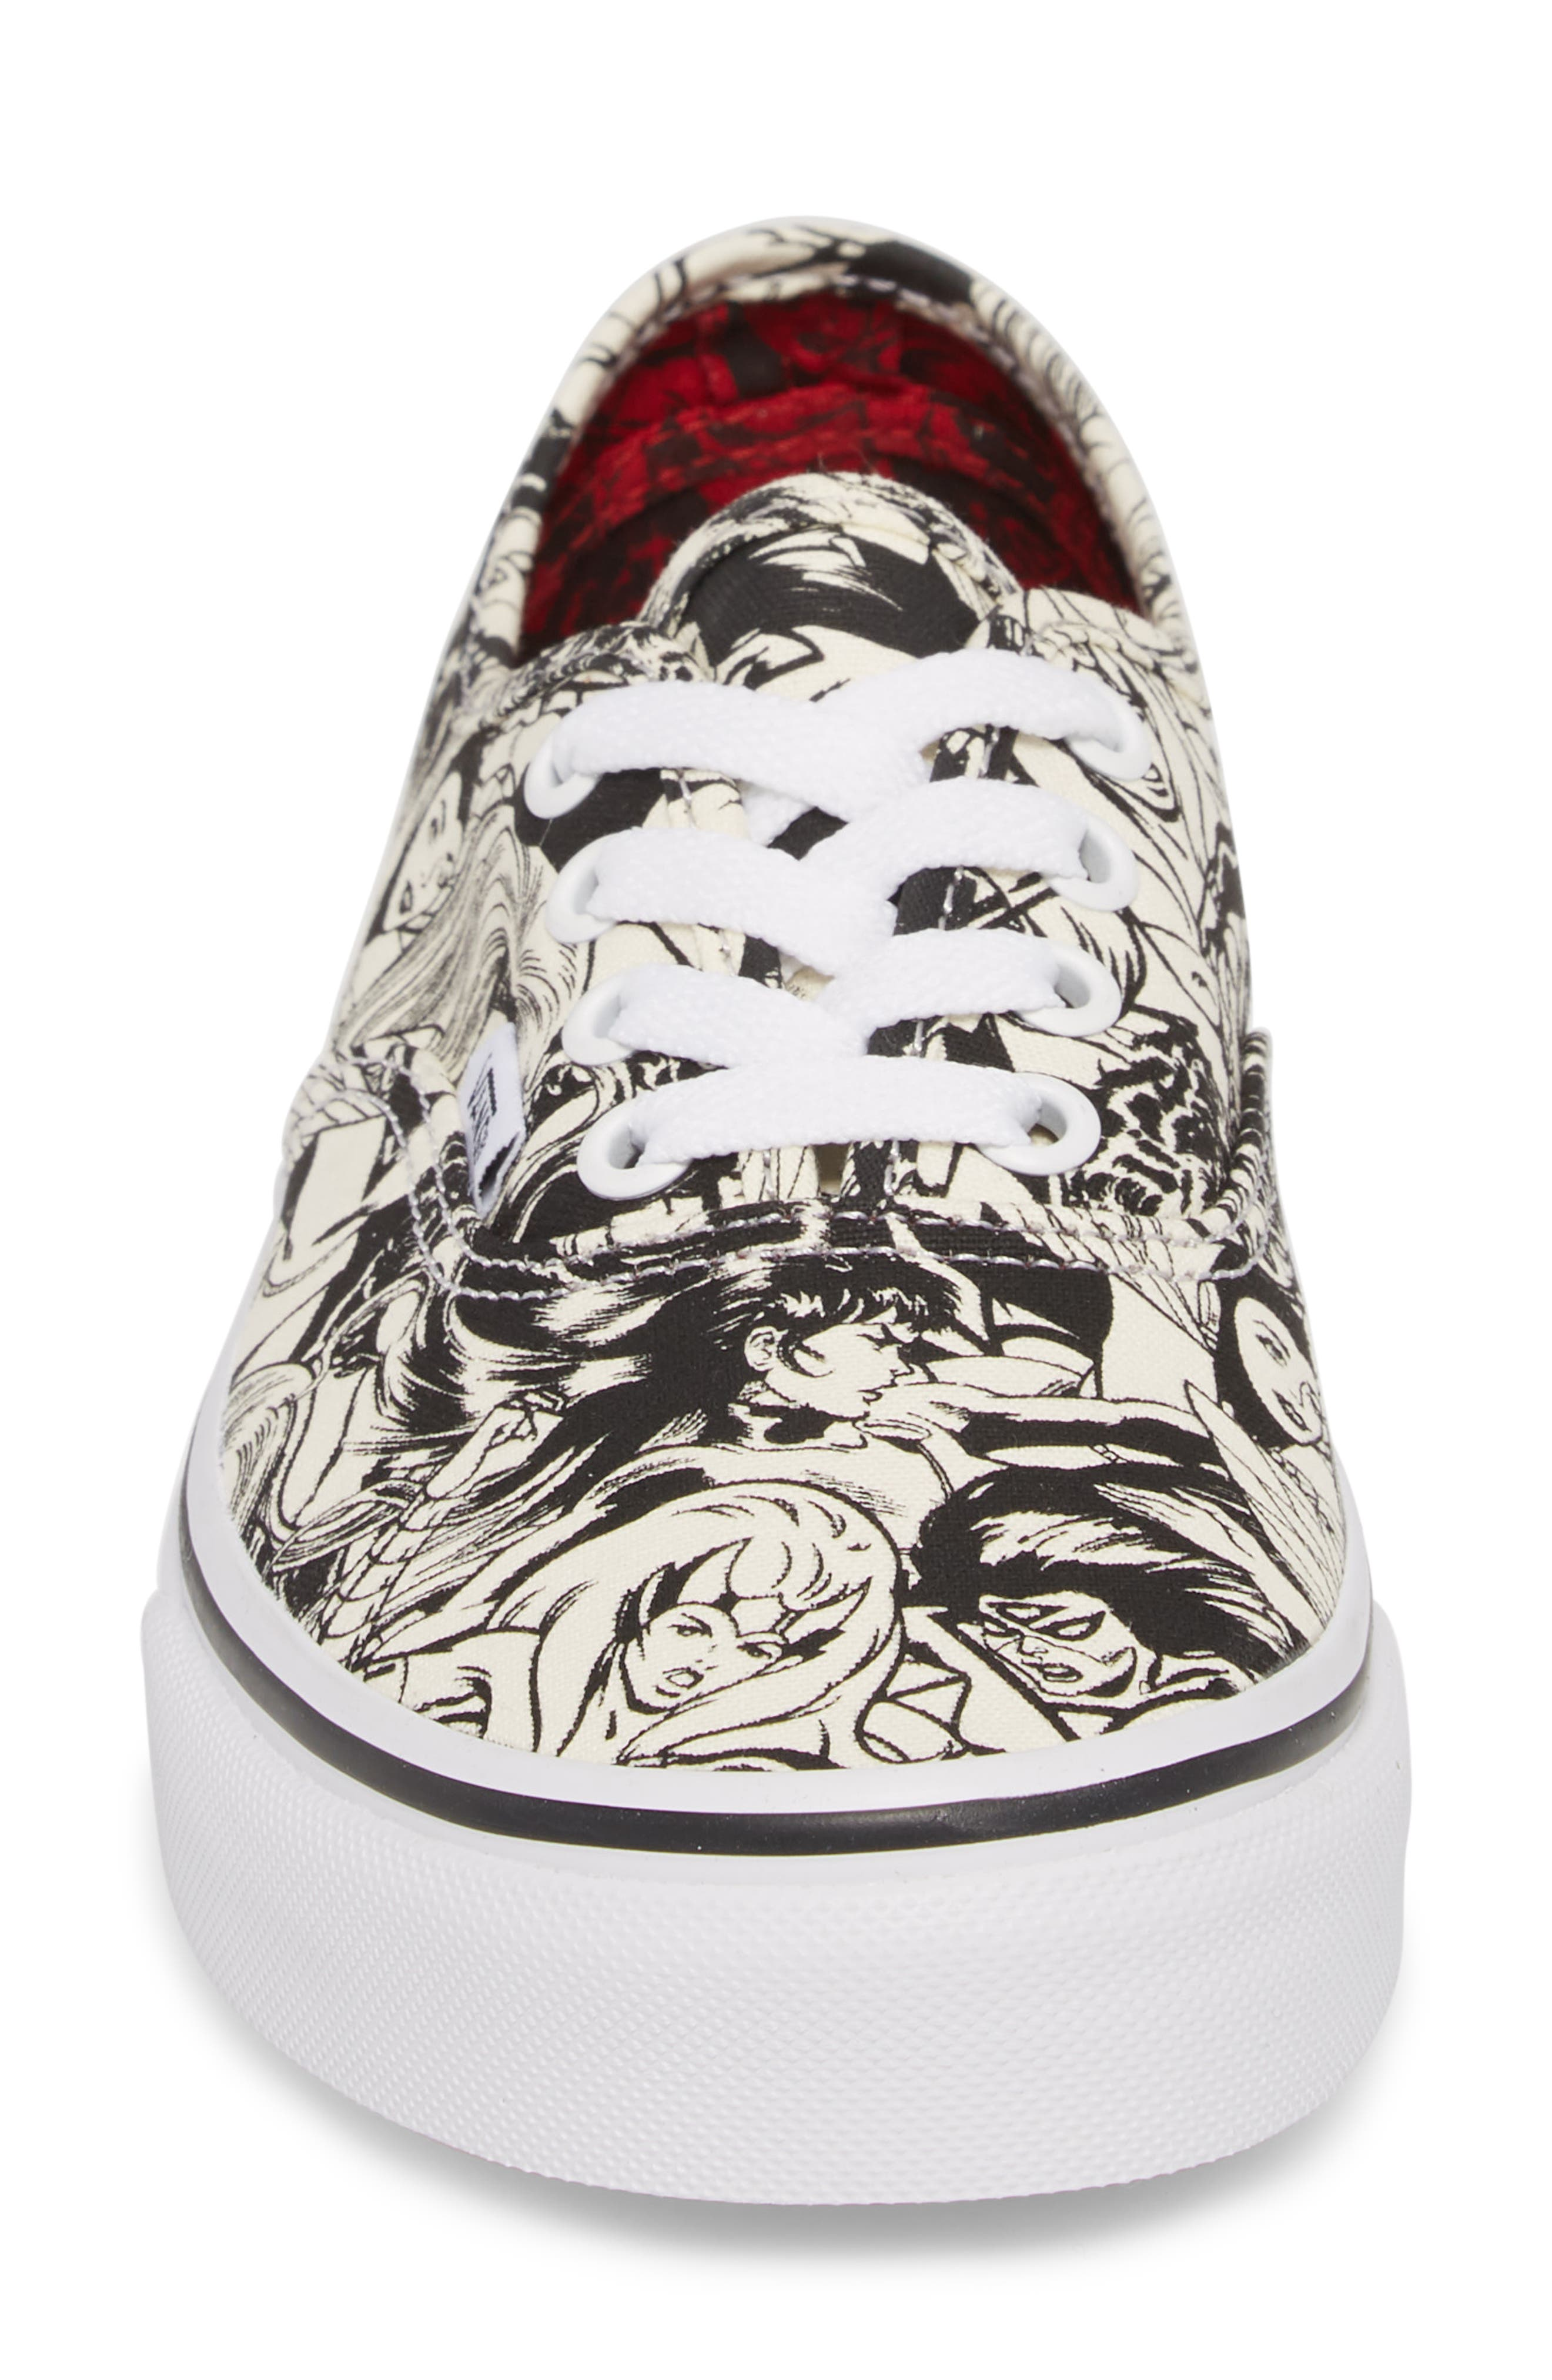 x Marvel<sup>®</sup><sup>®</sup> Sneaker,                             Alternate thumbnail 4, color,                             MARVEL MULTI/ WOMEN